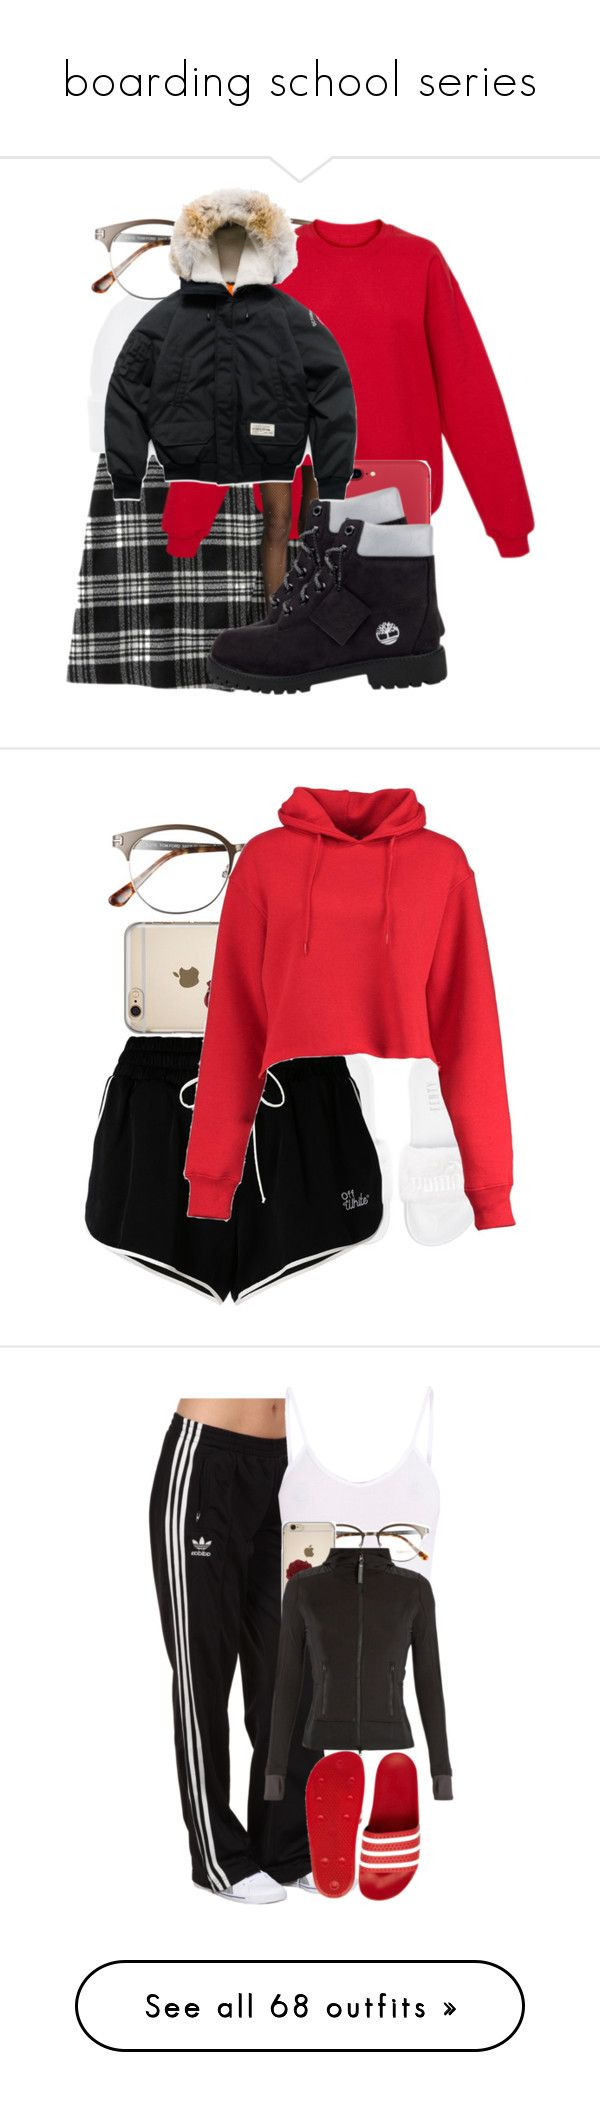 """""""boarding school series"""" by dianna-argons-lover ❤ liked on Polyvore featuring Abercrombie & Fitch, Ralph Lauren, Tom Ford, Hot Topic, Timberland, Canada Goose, Puma, Off-White, Boohoo and adidas Originals"""